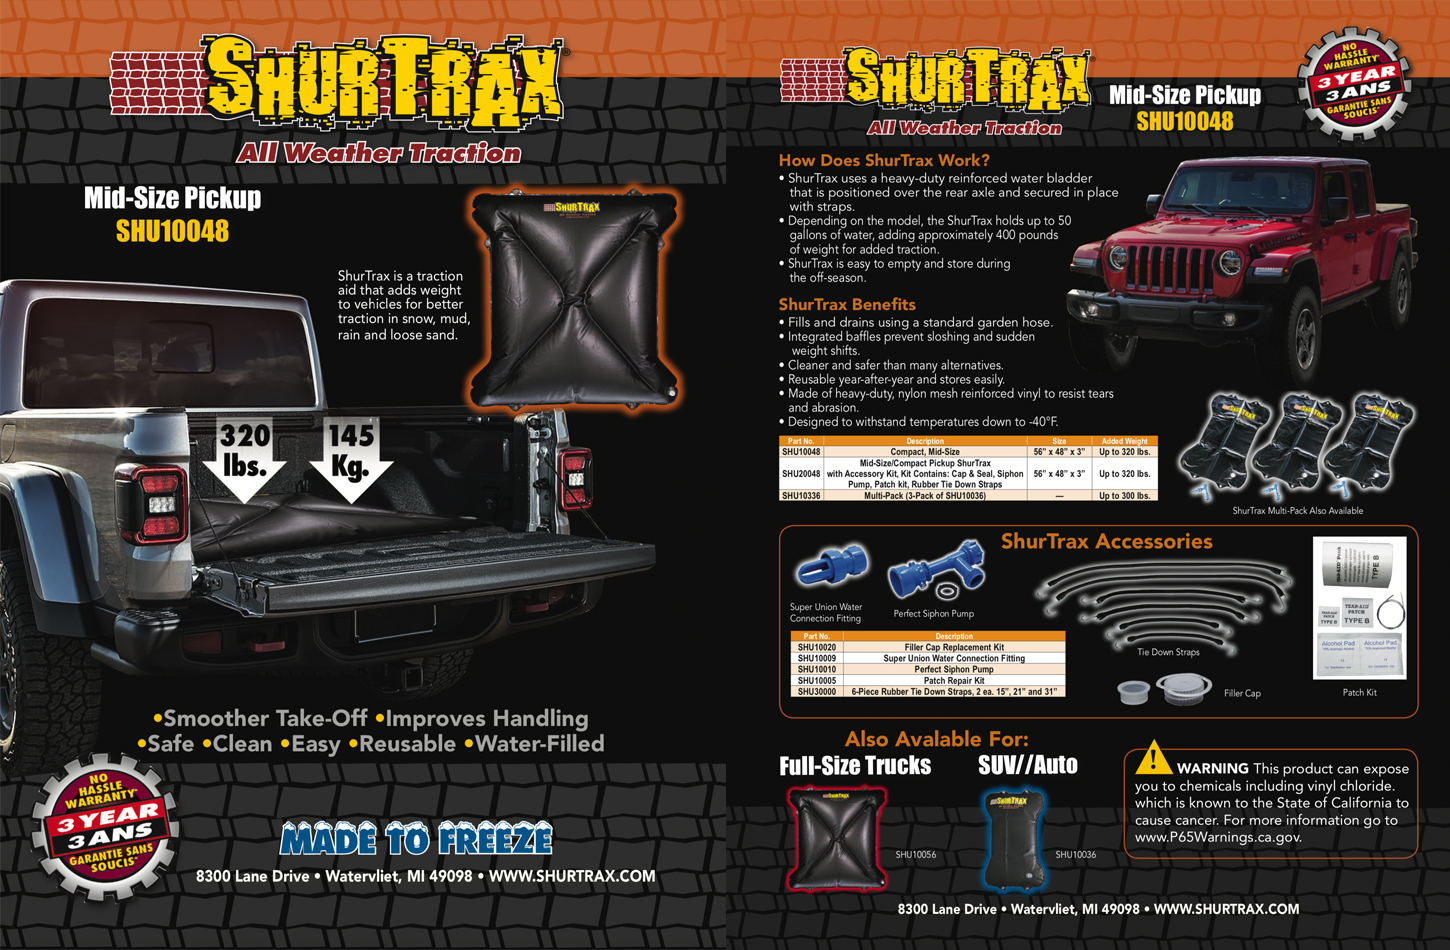 Shurtrax Mid-Size Pick-Up Sell Sheet